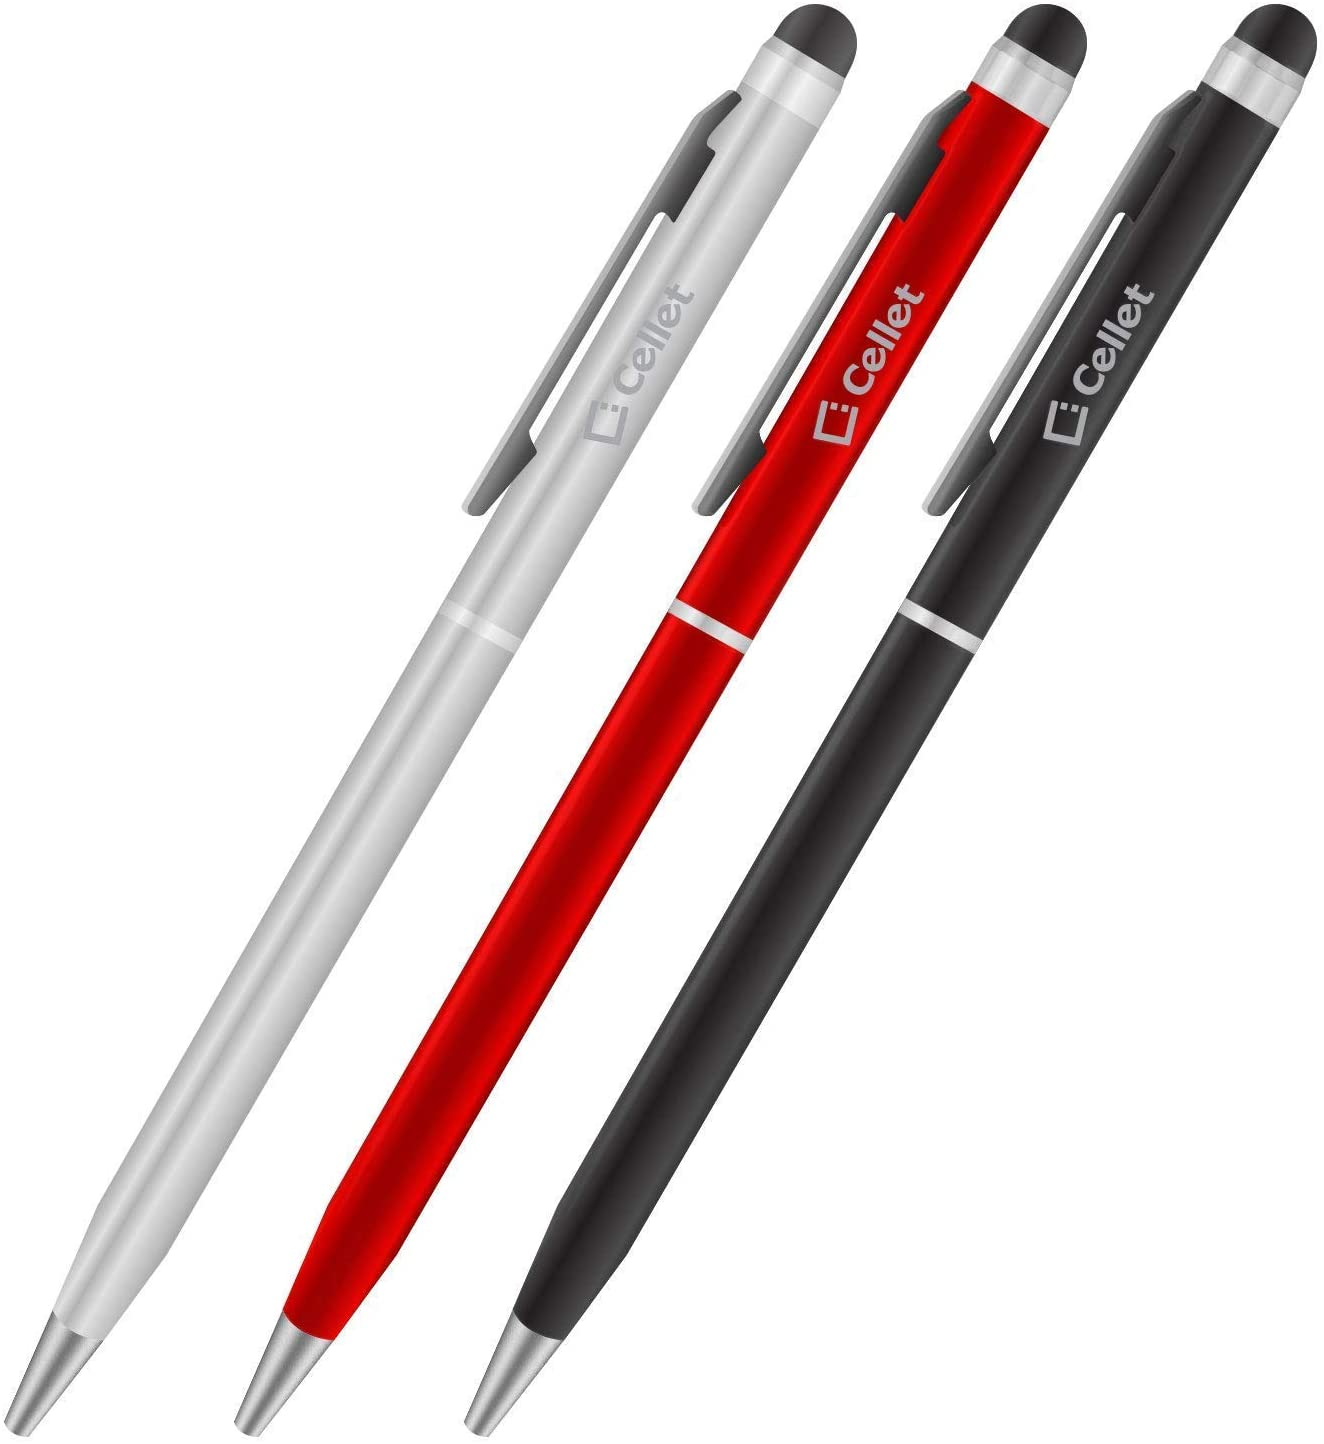 PRO Stylus Pen for Samsung Galaxy Tab S6 with Ink, High Accuracy, Extra Sensitive, Compact Form for Touch Screens [3 Pack-Black-Red-Silver]